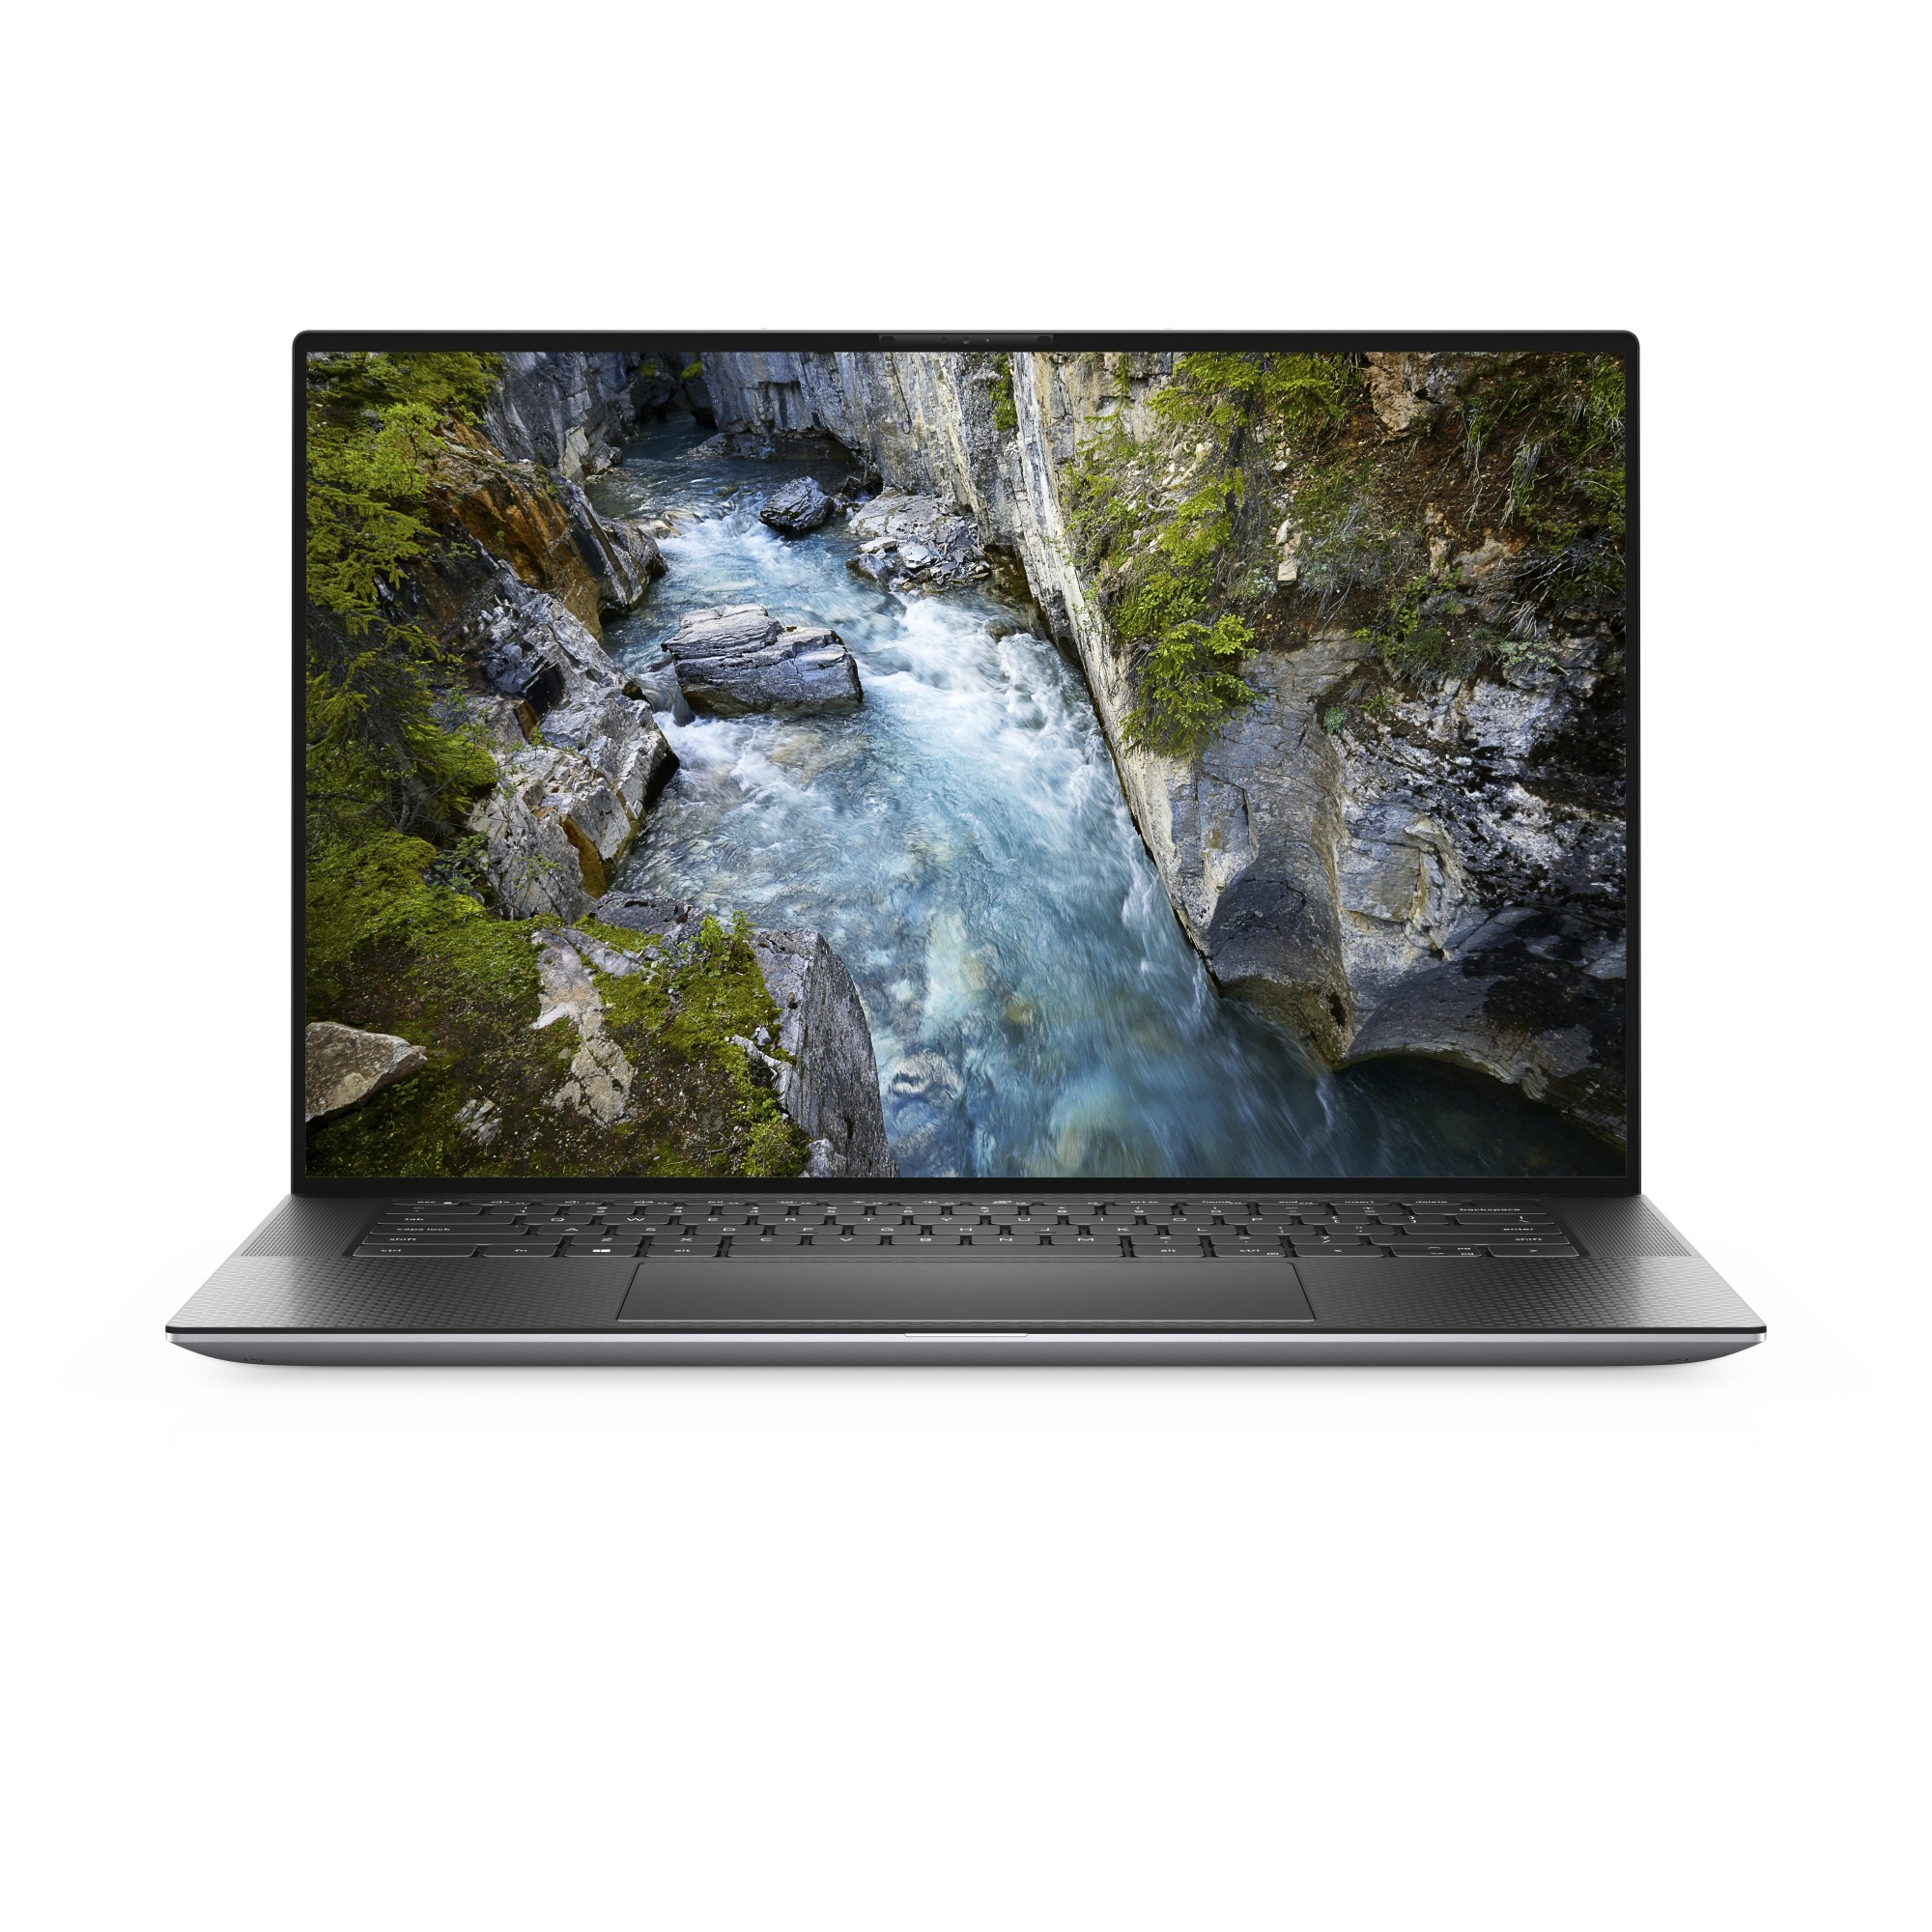 "DELL Precision 5550 Mobiel werkstation Grijs 39,6 cm (15.6"") 1920 x 1200 Pixels Intel® 10de generatie Core™ i7 16 GB DDR4-SDRAM 256 GB SSD NVIDIA Quadro T1000 Wi-Fi 6 (802.11ax) Windows 10 Pro"